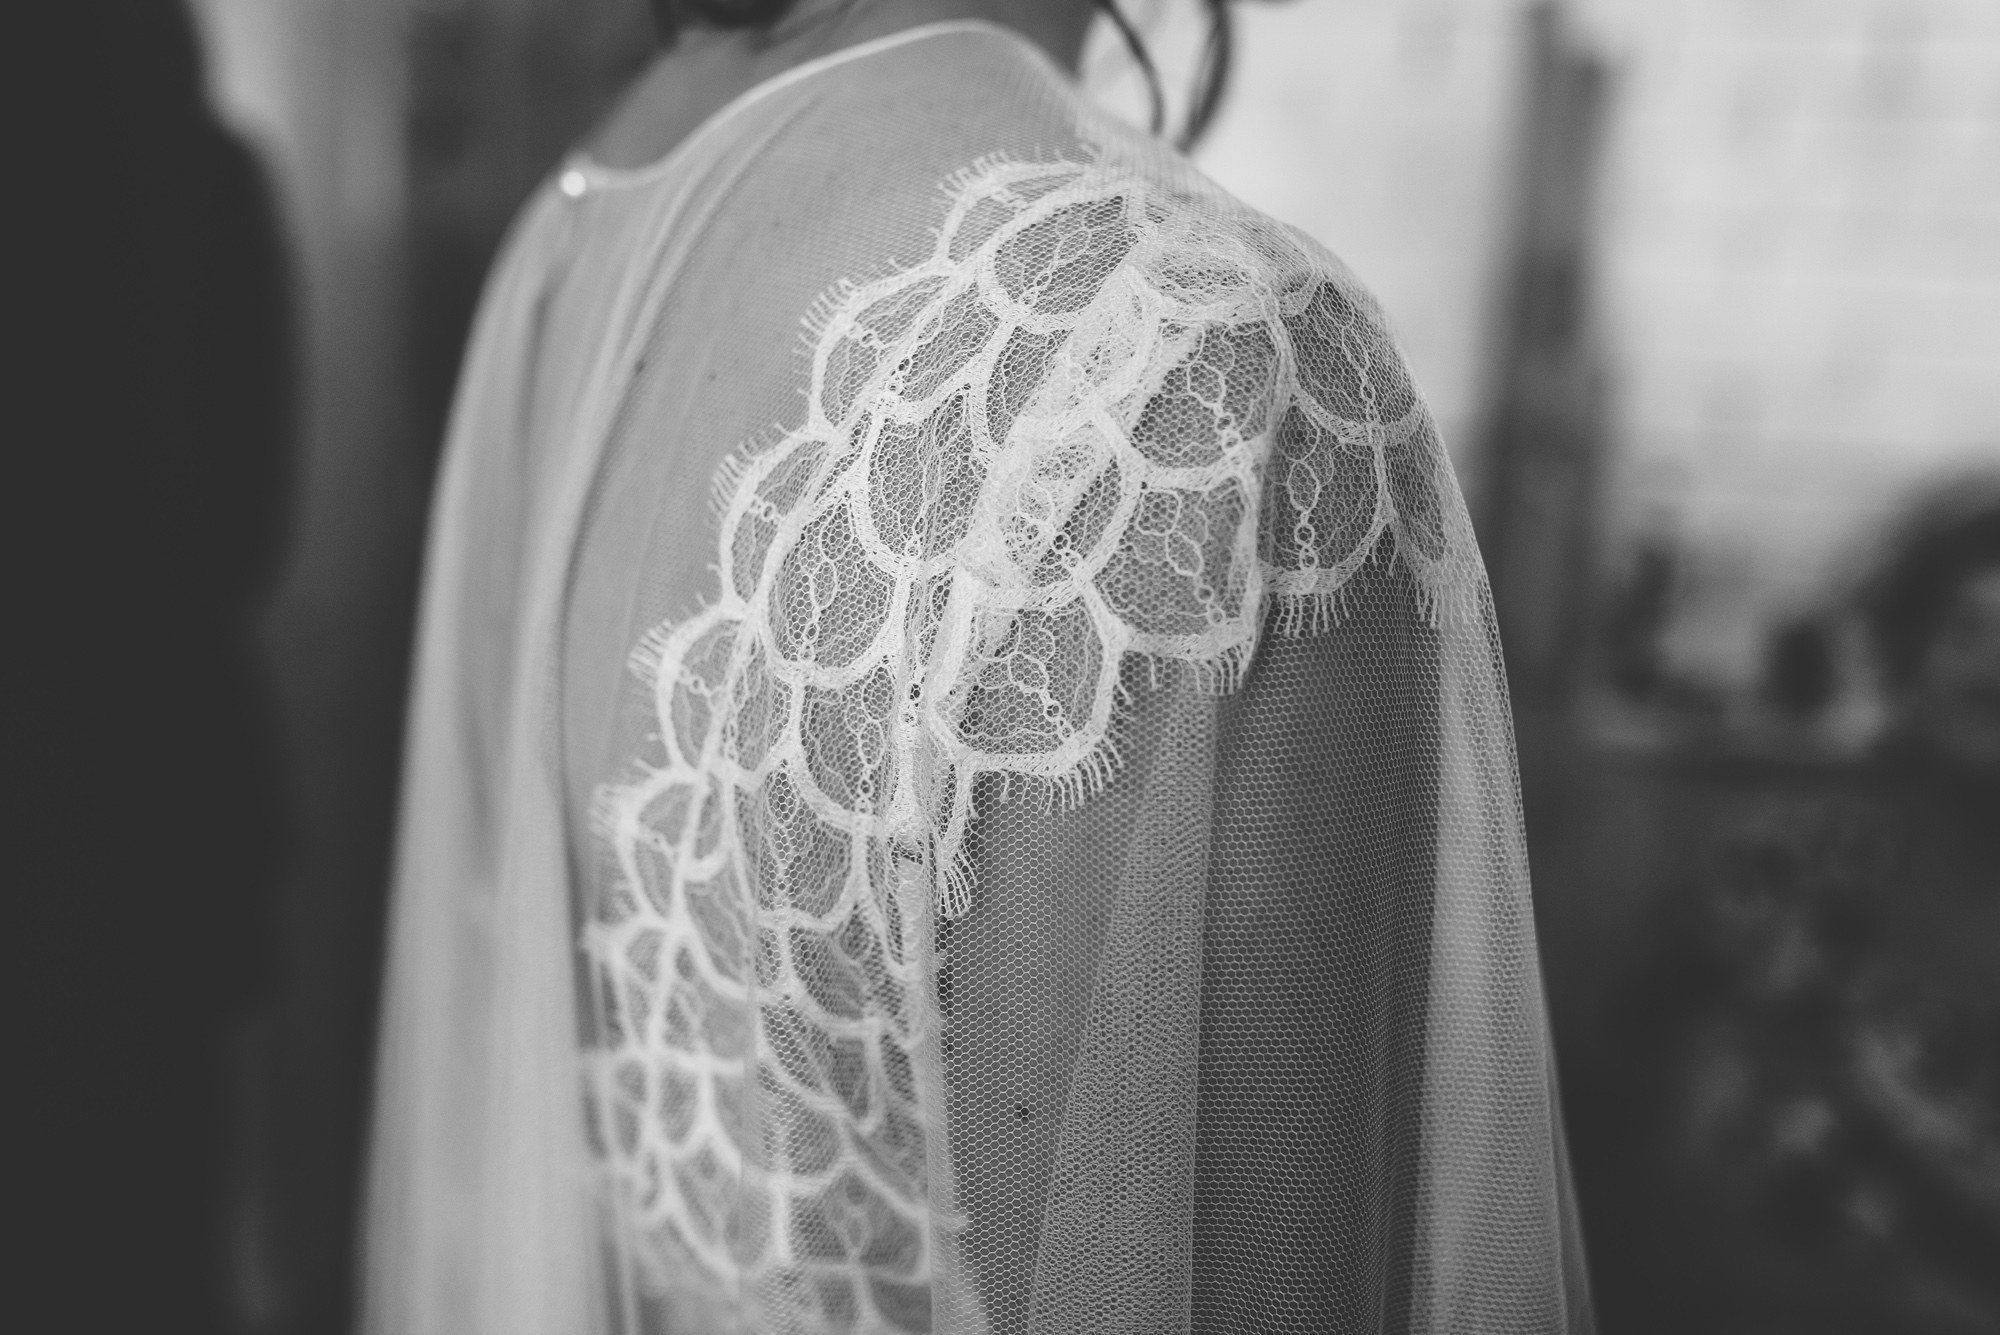 Kate-Beaumont-Sheffield-Lucy-Bohemian-Lace-Dress-Barn-Wedding-Cumbria-32.jpg